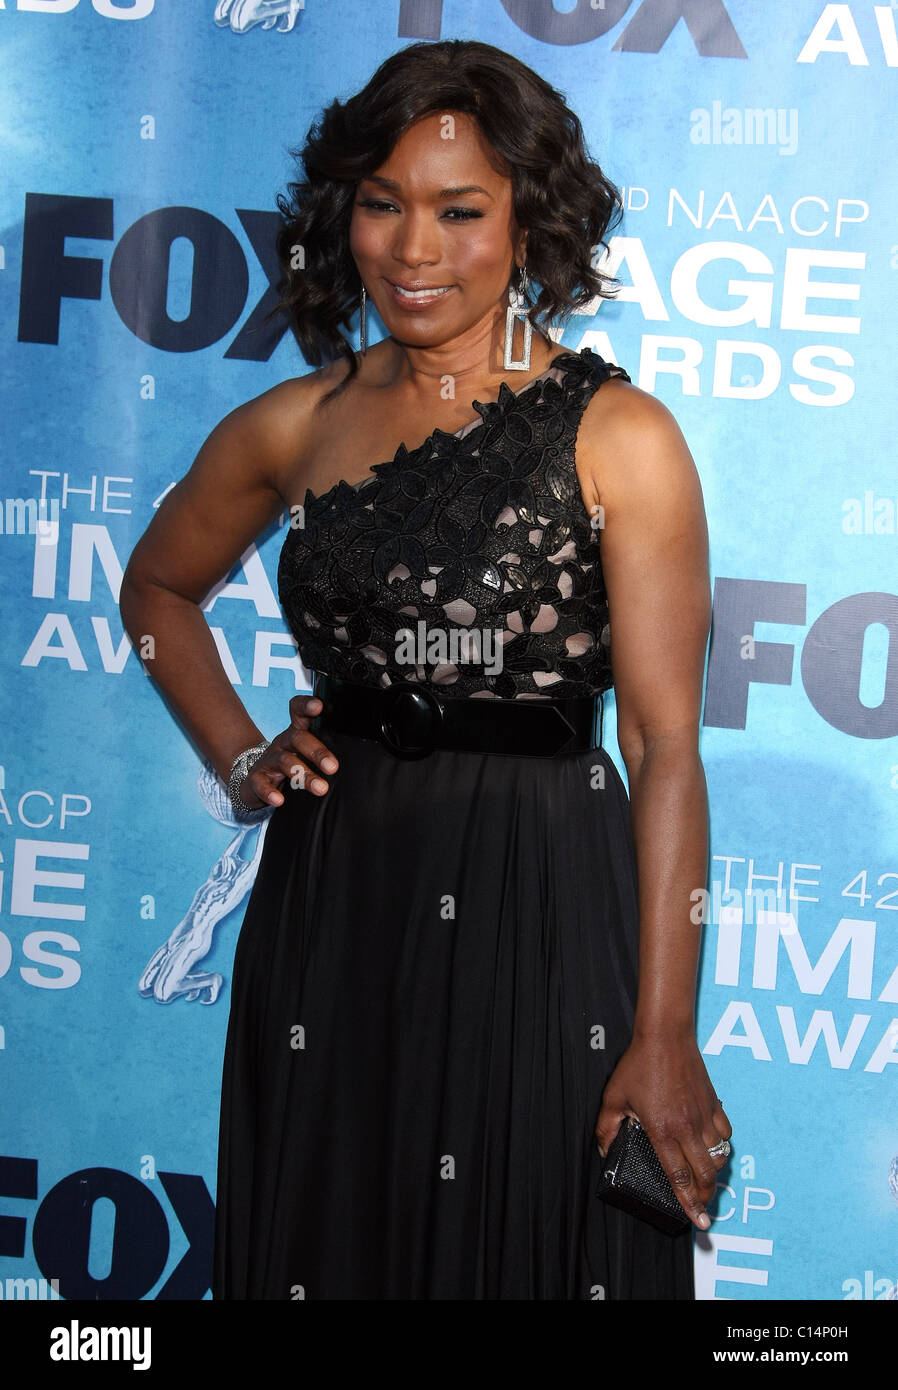 ANGELA BASSETT 42ND NAACP IMAGE AWARDS ARRIVALS DOWNTOWN LOS ANGELES CALIFORNIA USA 04 March 2011 - Stock Image